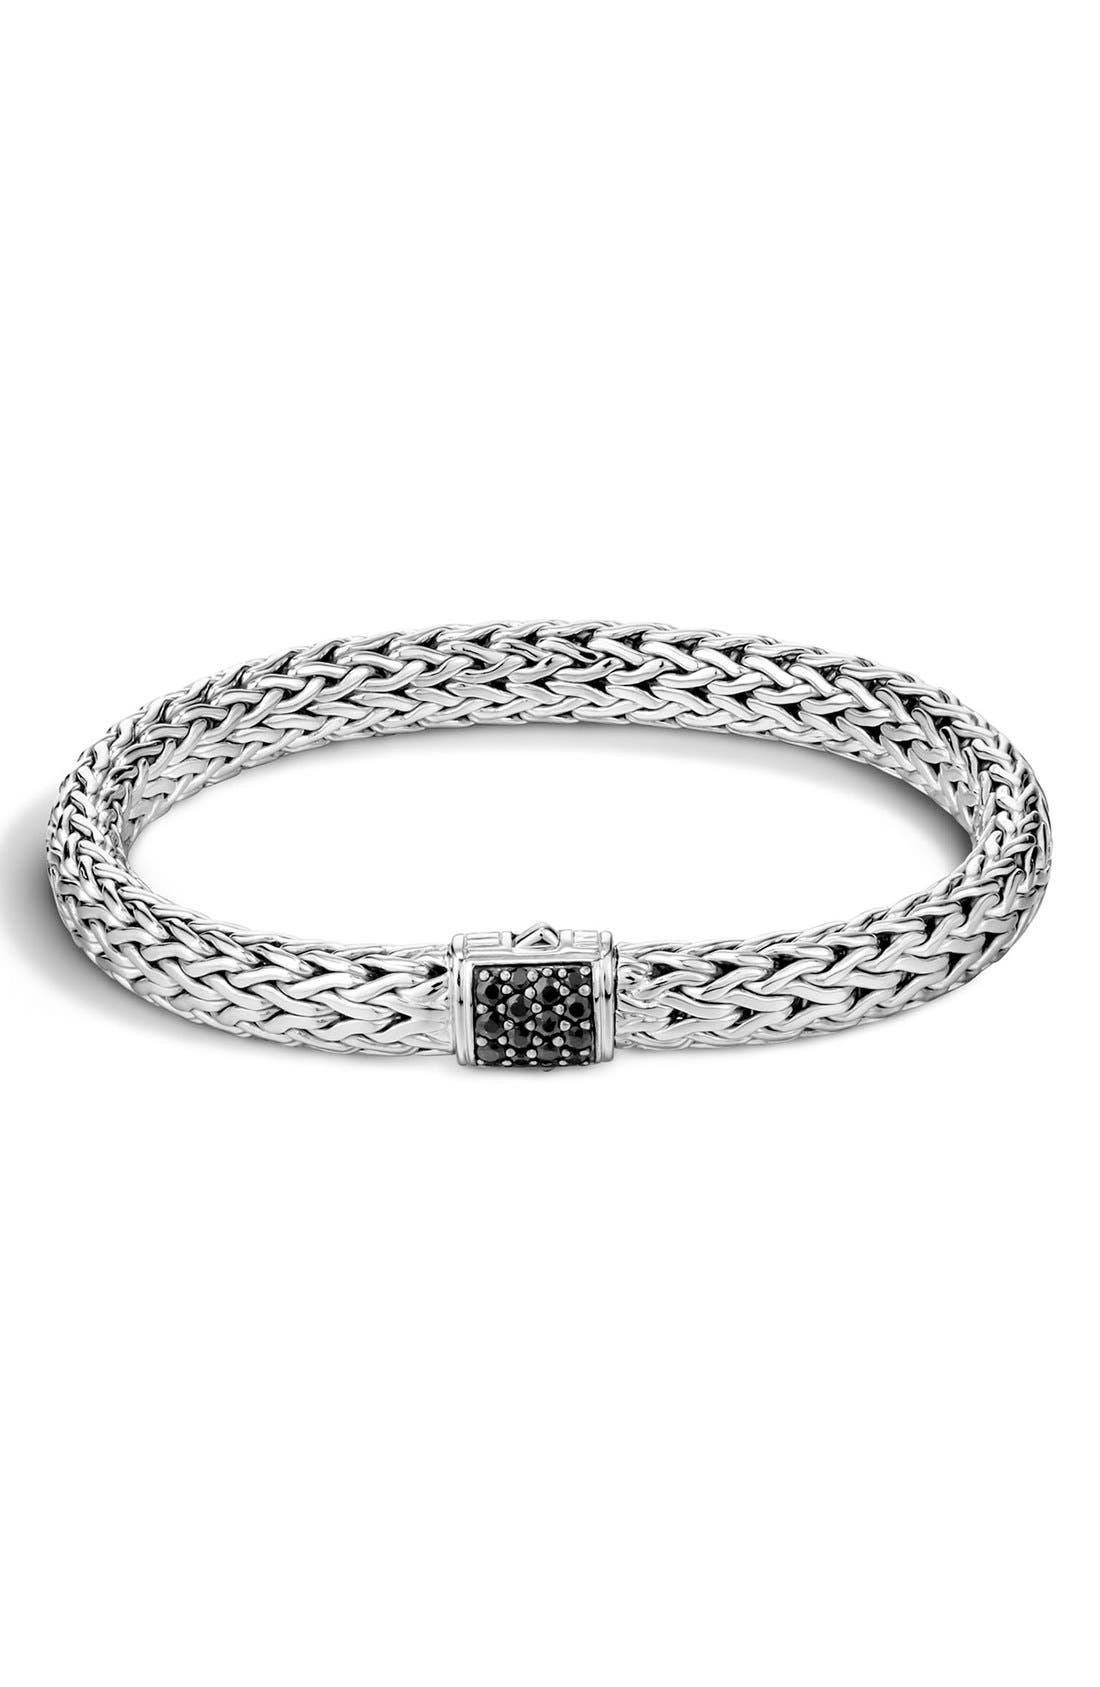 Classic Chain 7.5mm Bracelet,                         Main,                         color, BLACK SAPPHIRE